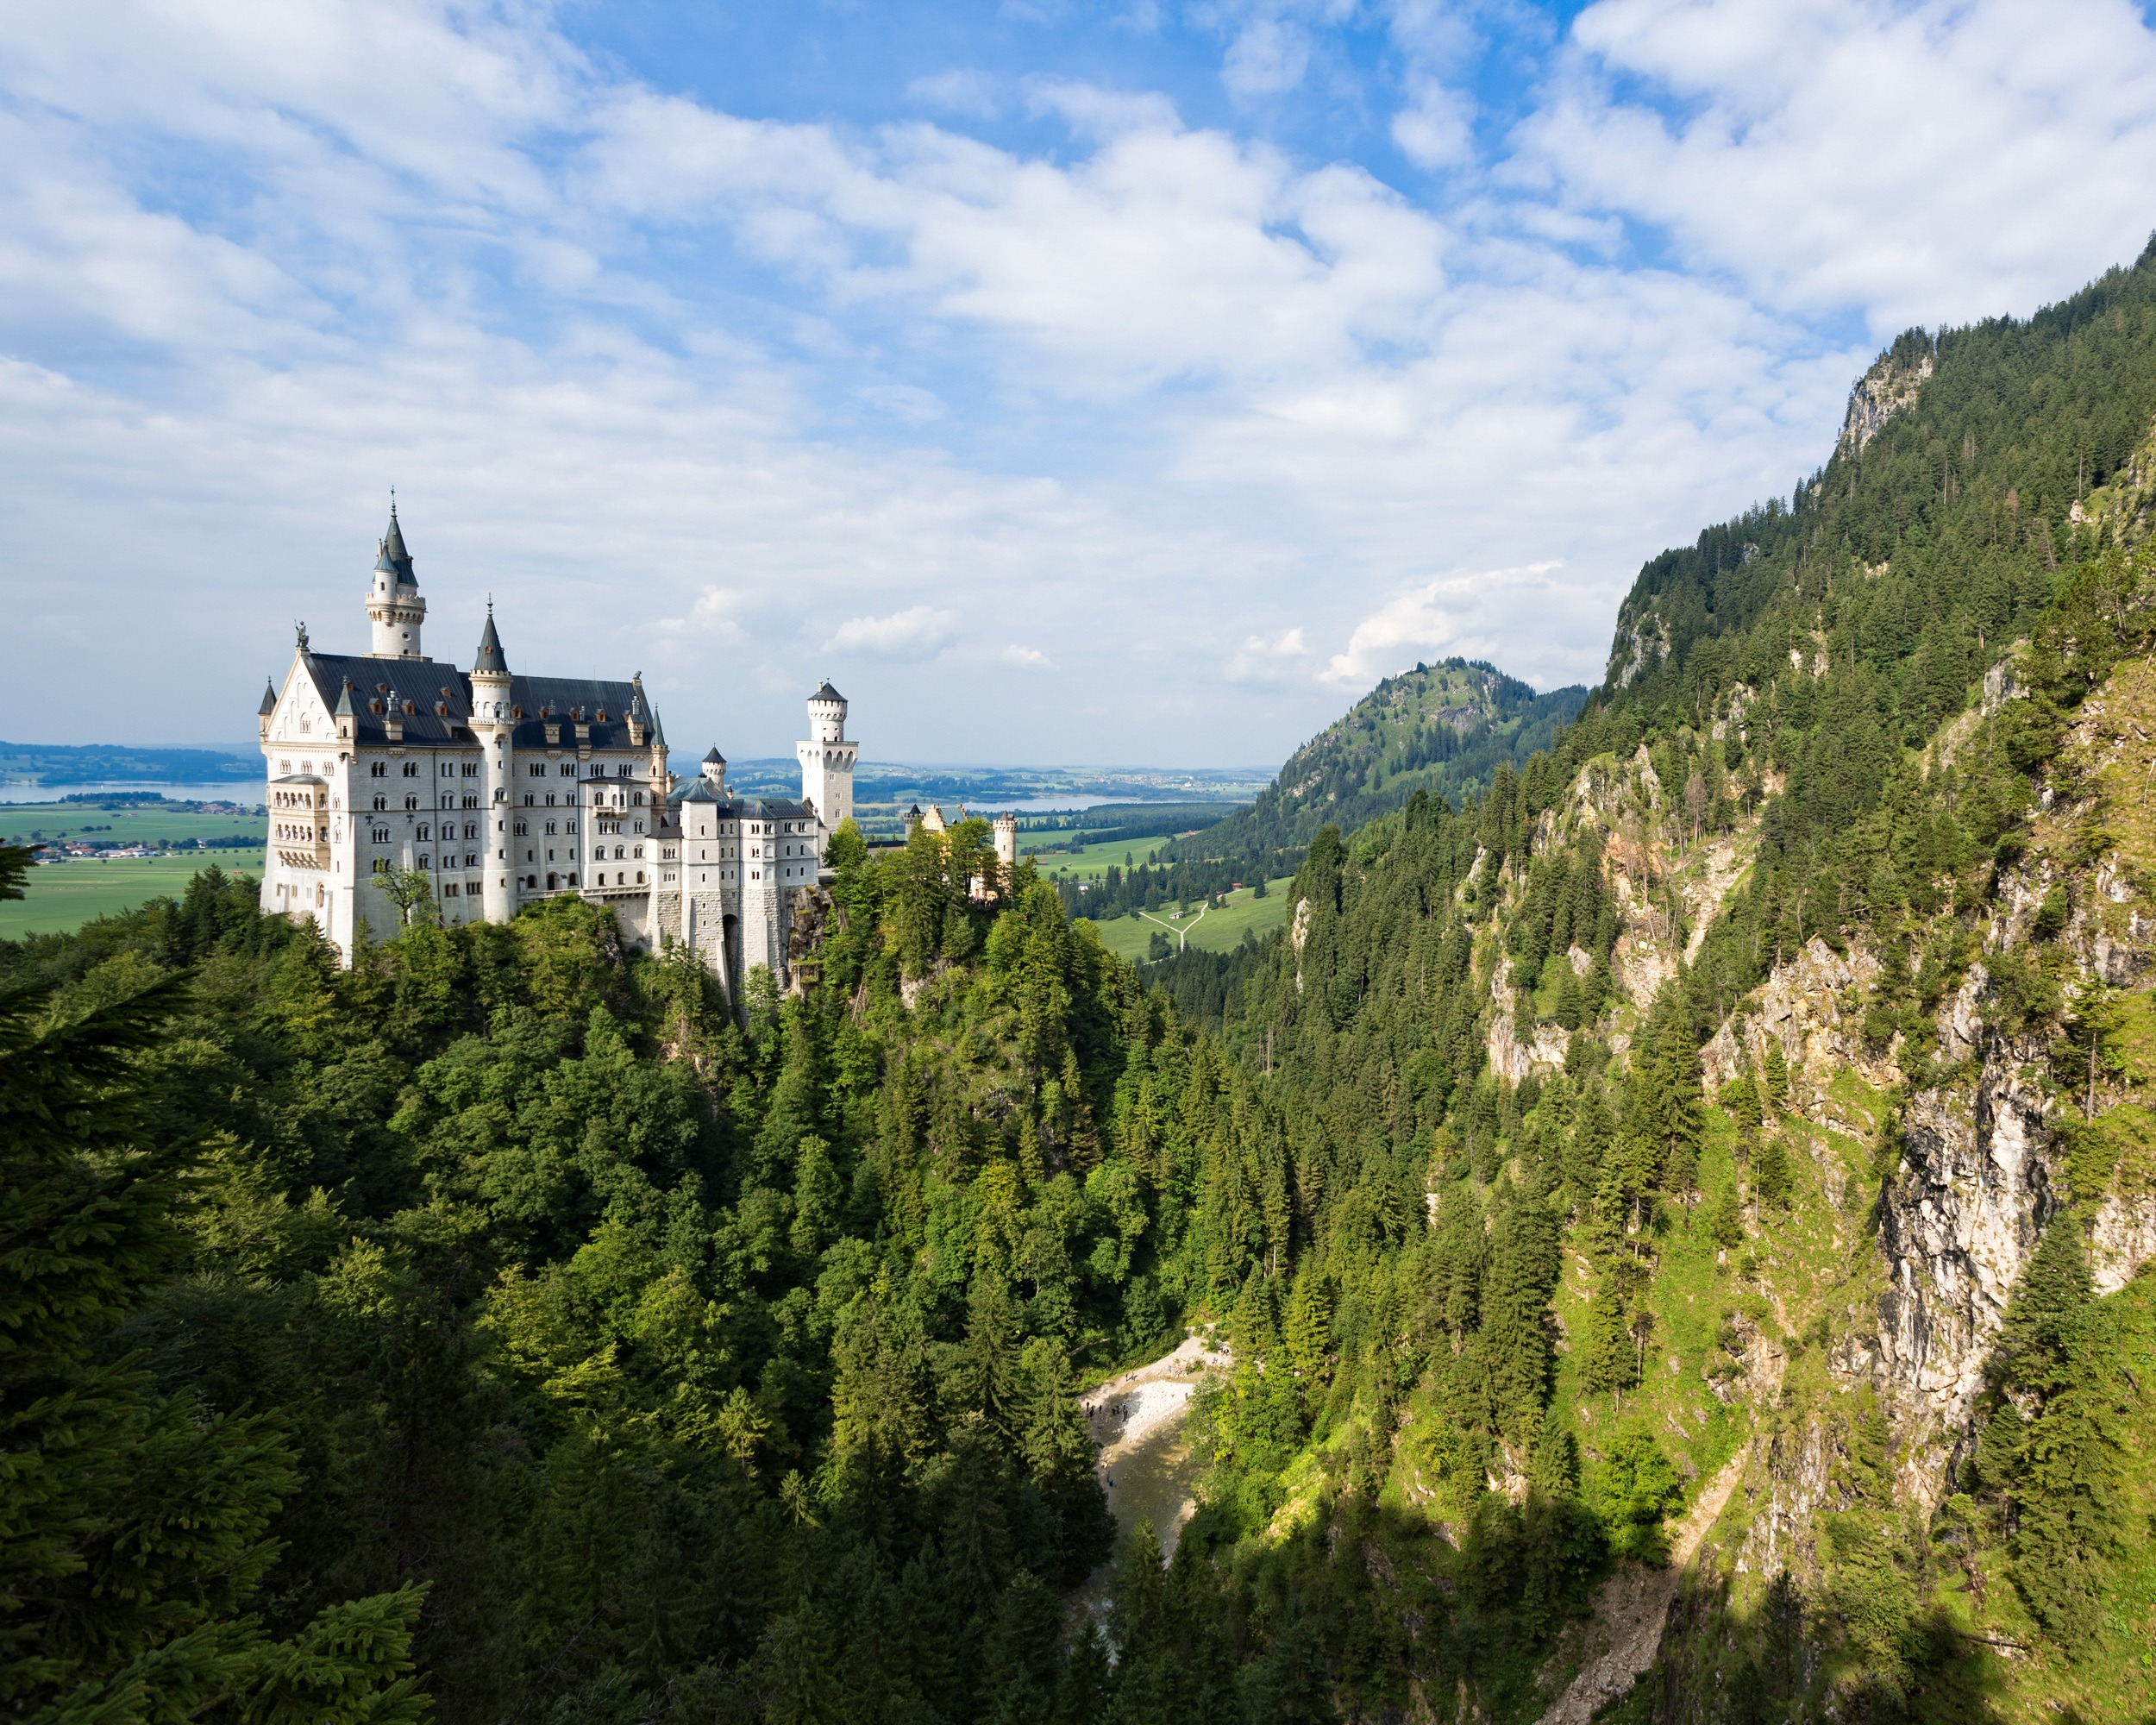 Neuschwanstein Castle in Germany Photo Iankelsall1 on Pixabay